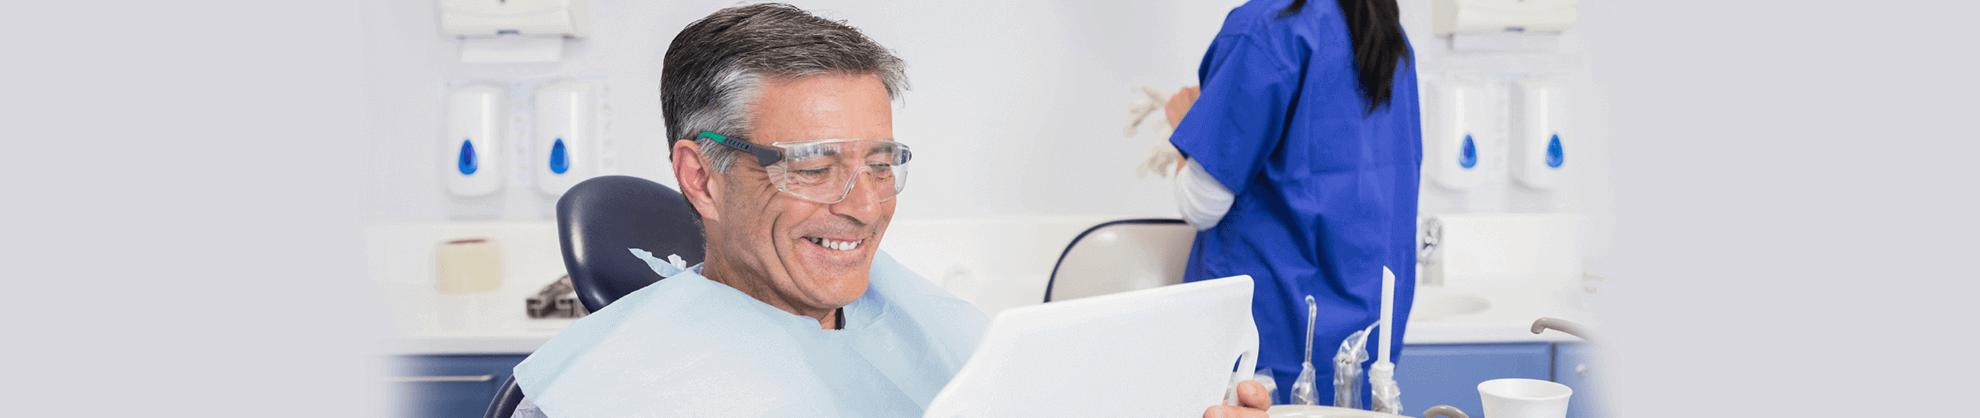 Dental Implants in Elk Grove and Sacramento, CA